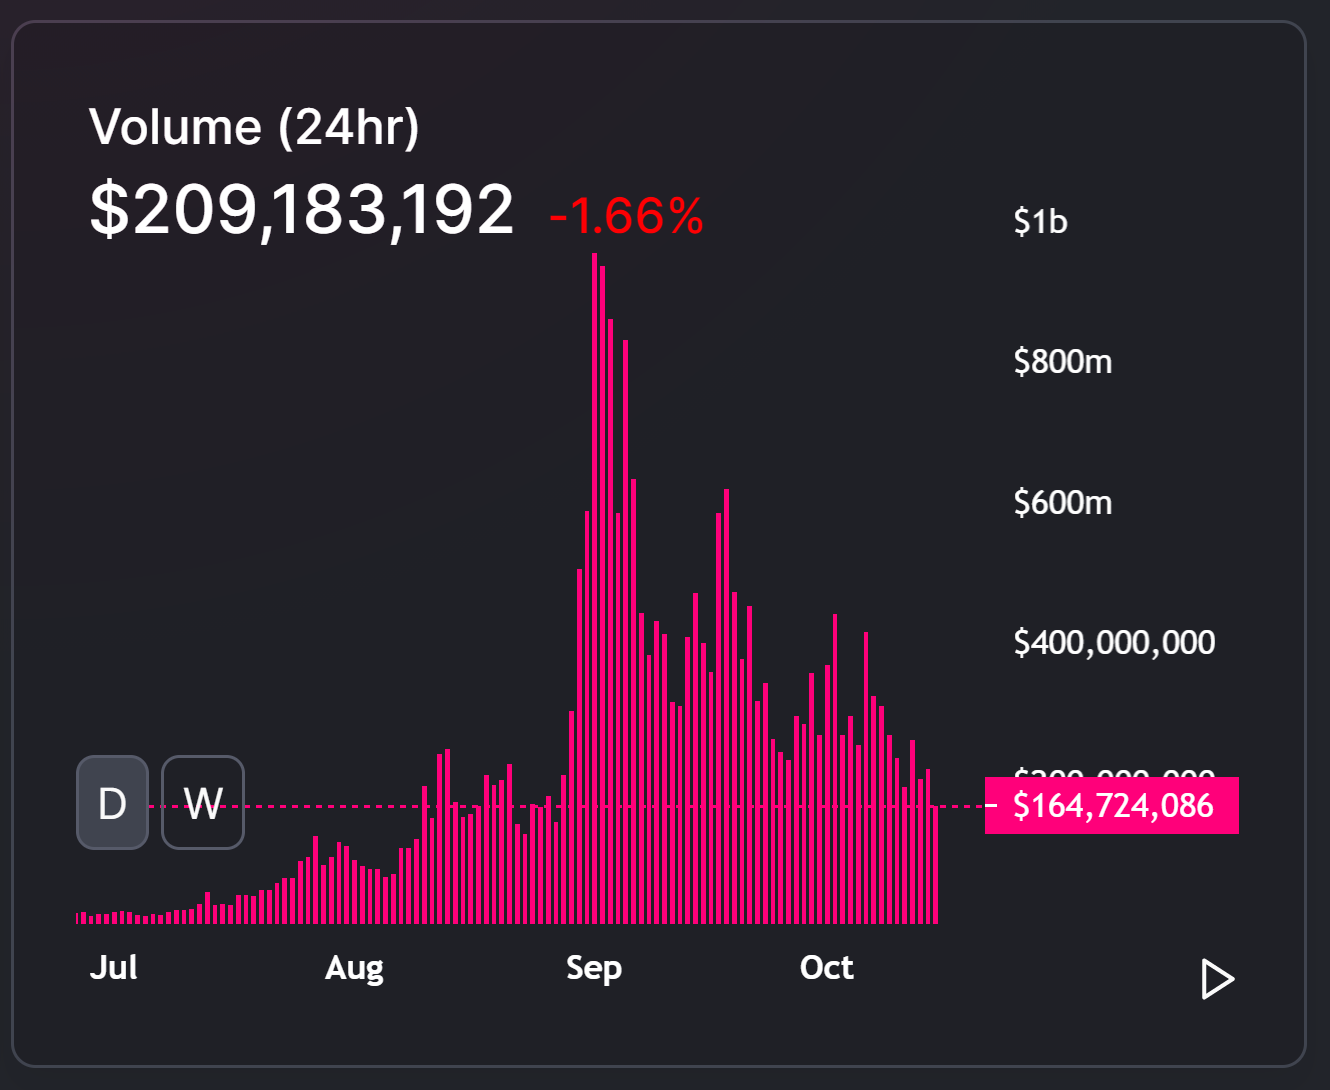 Uniswap daily volume since July